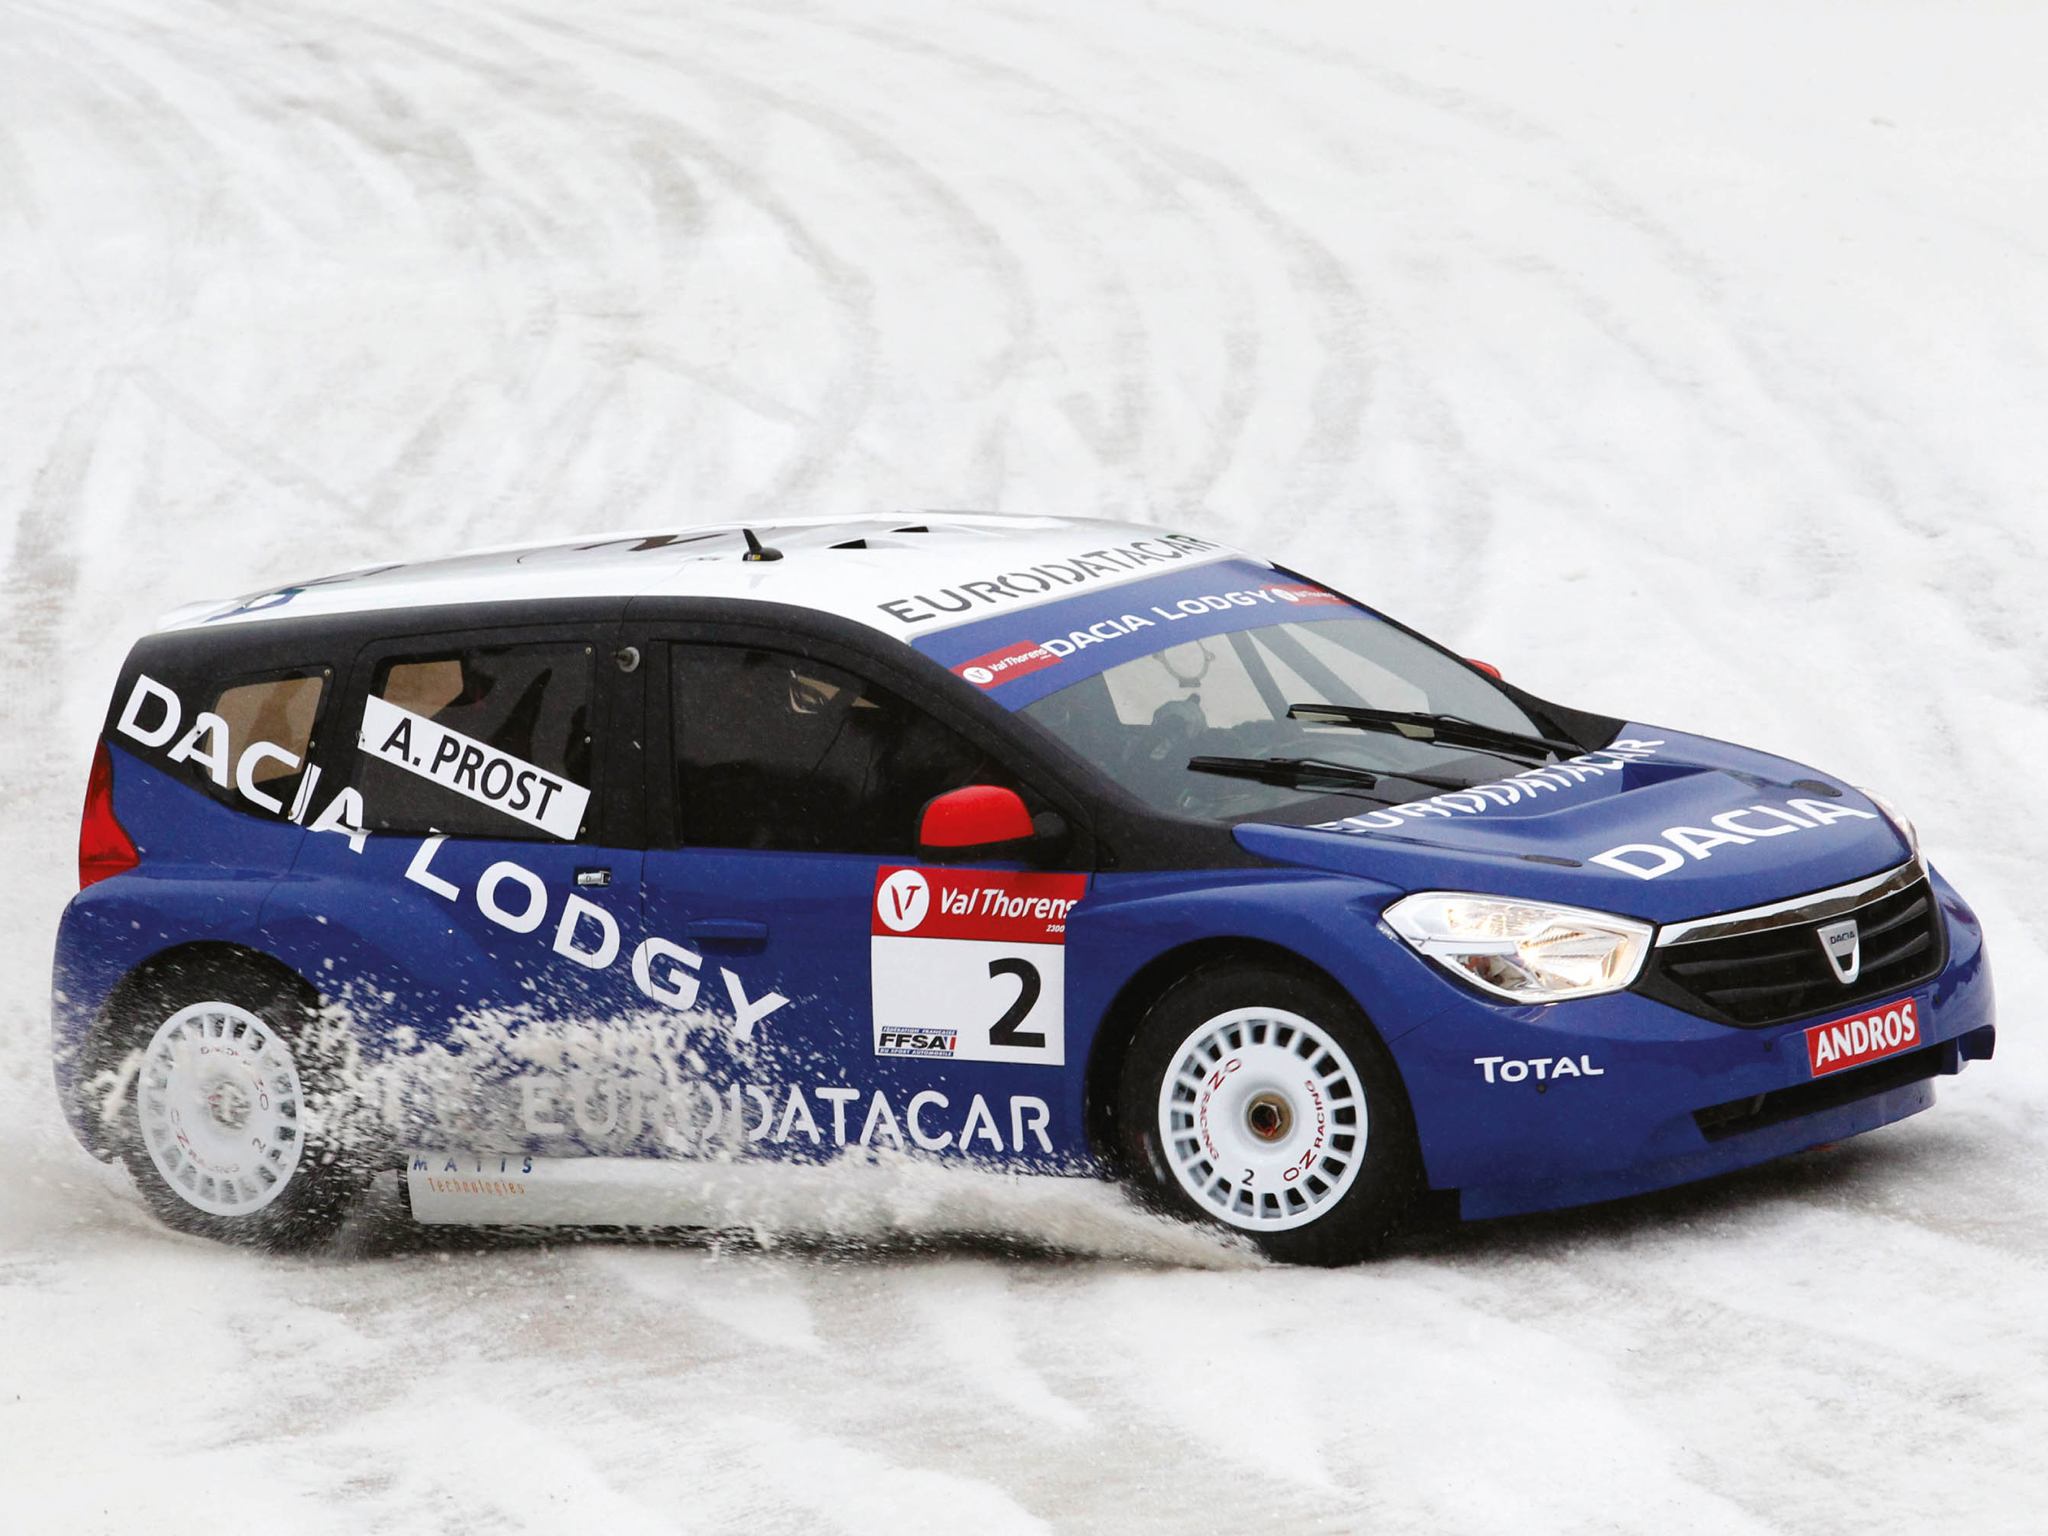 Andros Trophy Racing Dacia Lodgy Glace Trophe Andros 2011 HD 2048x1536